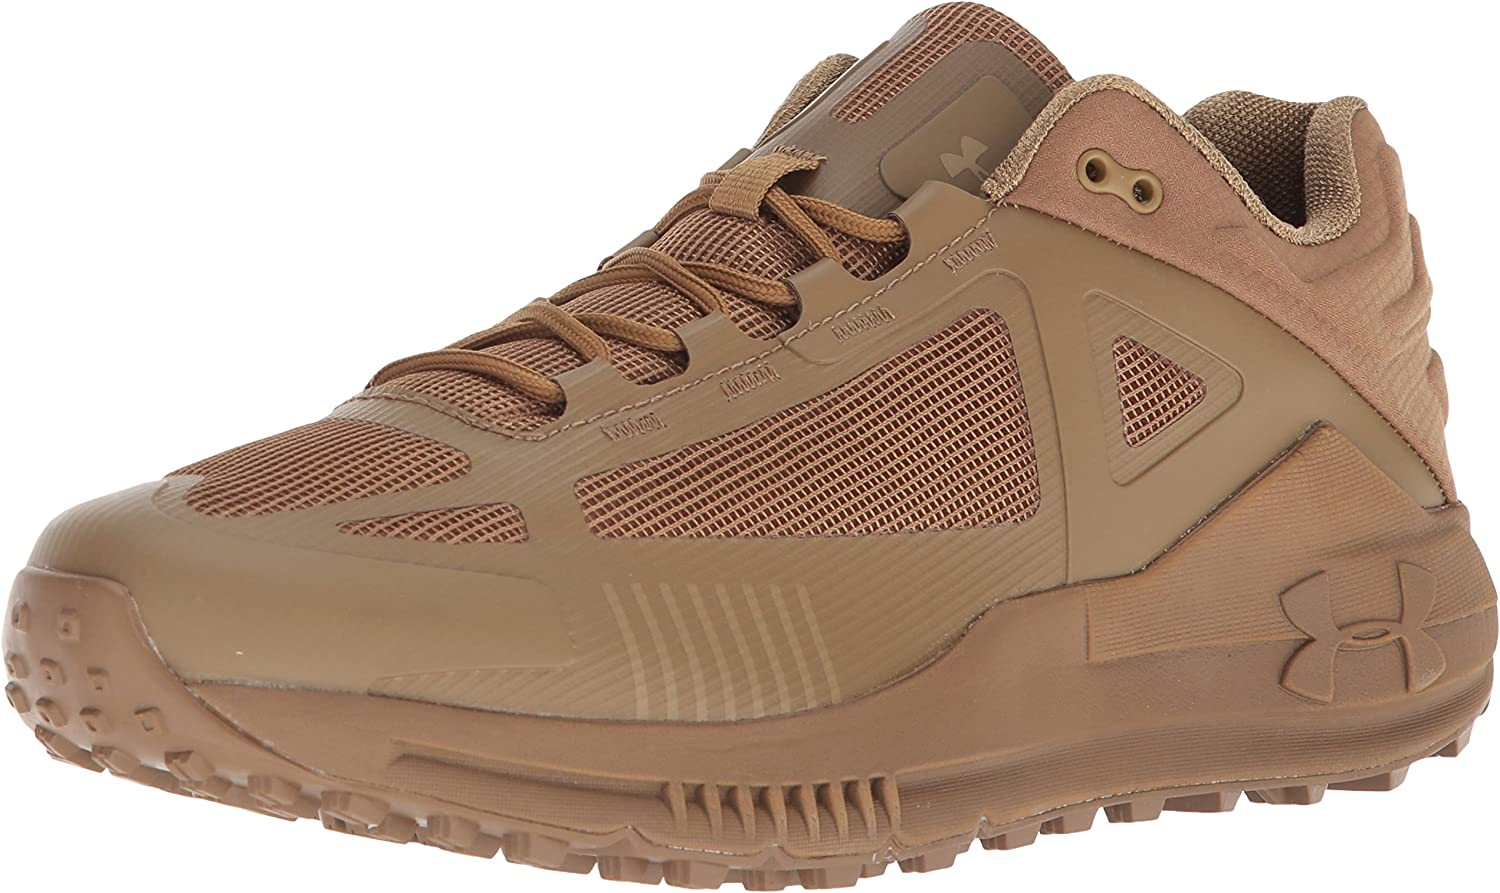 Under Armour Men's Verge 2.0 Low Hiking Boot